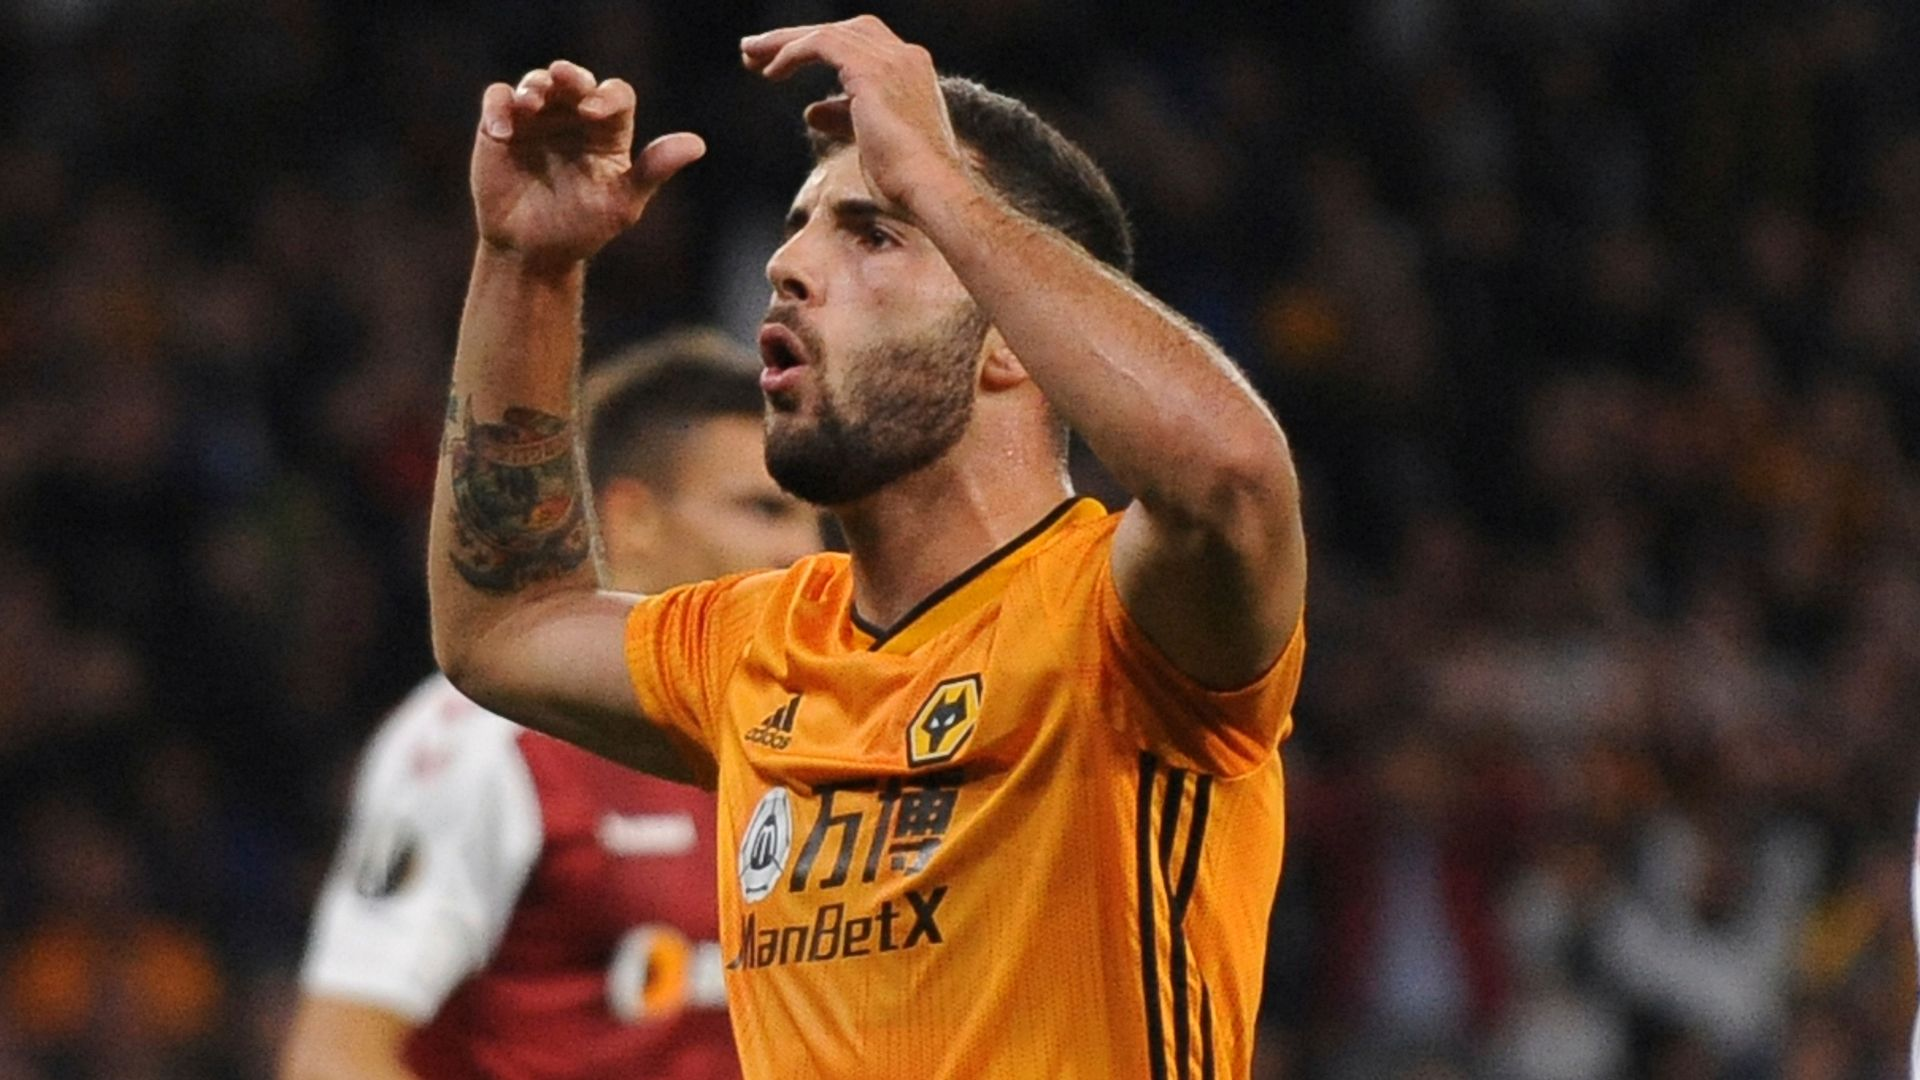 Wolves recall Cutrone from Fiorentina